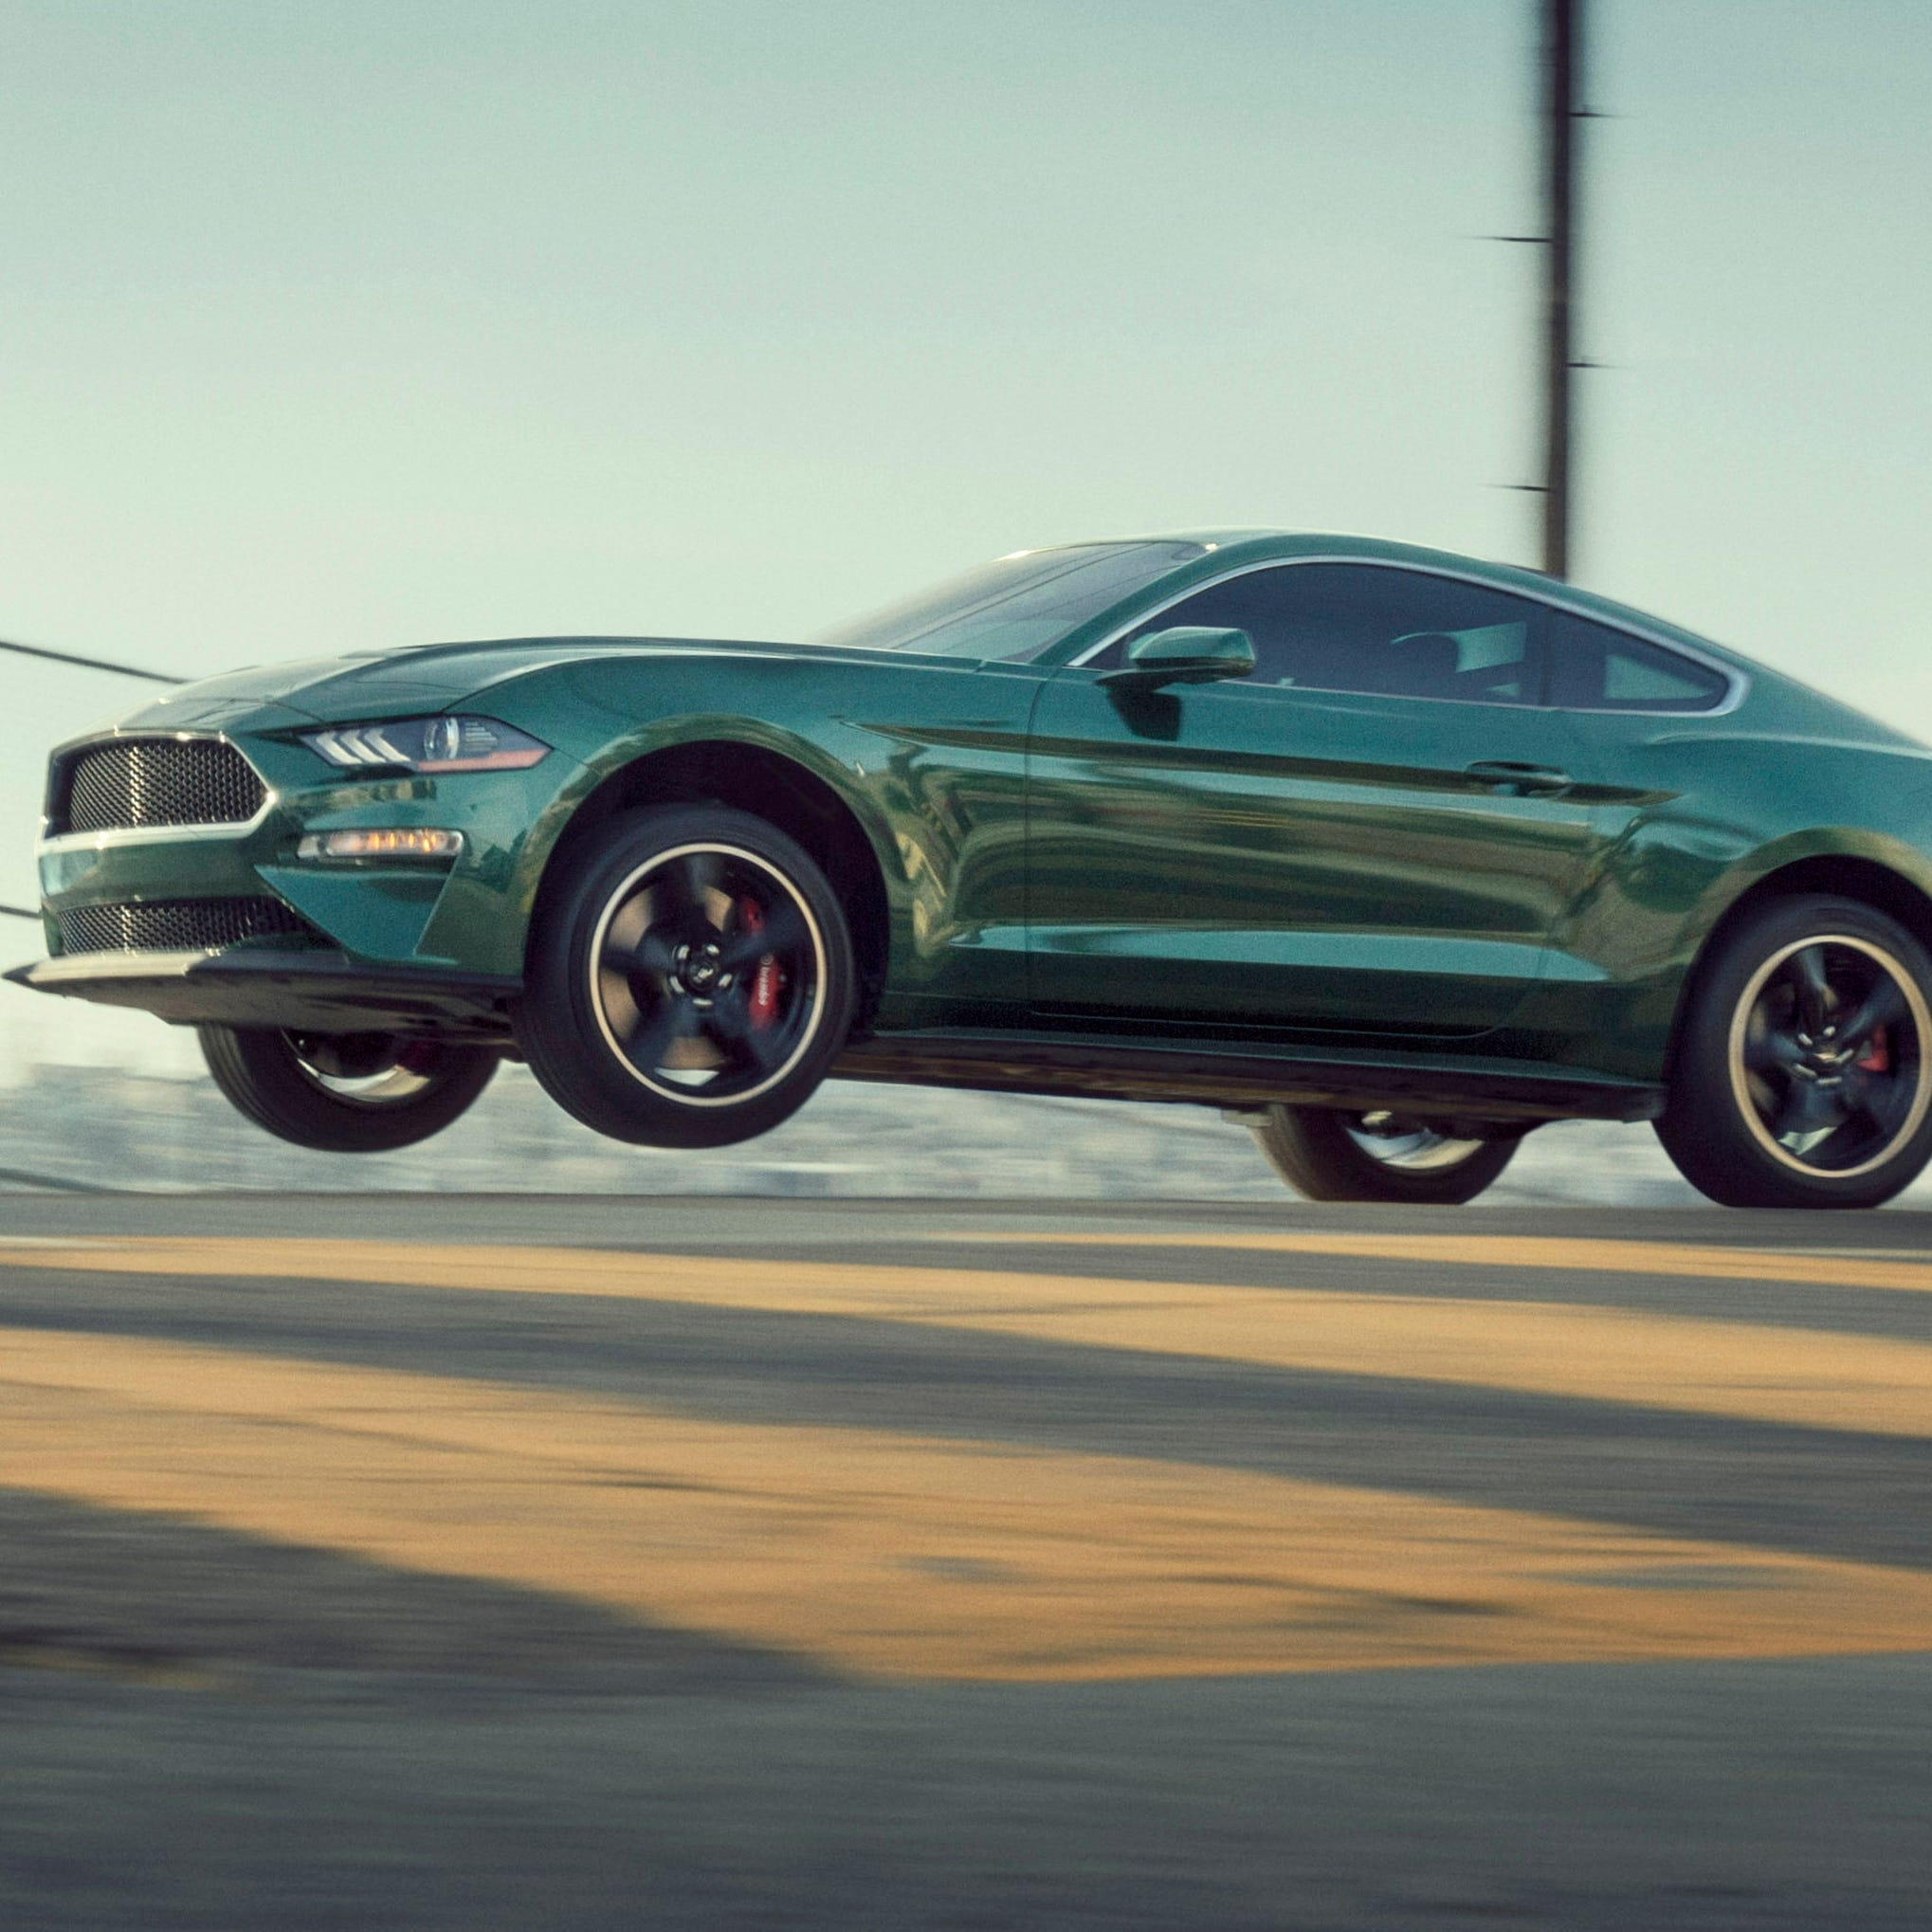 The 2019 Ford Mustang Bullitt goes airborne on the streets of San Francisco.